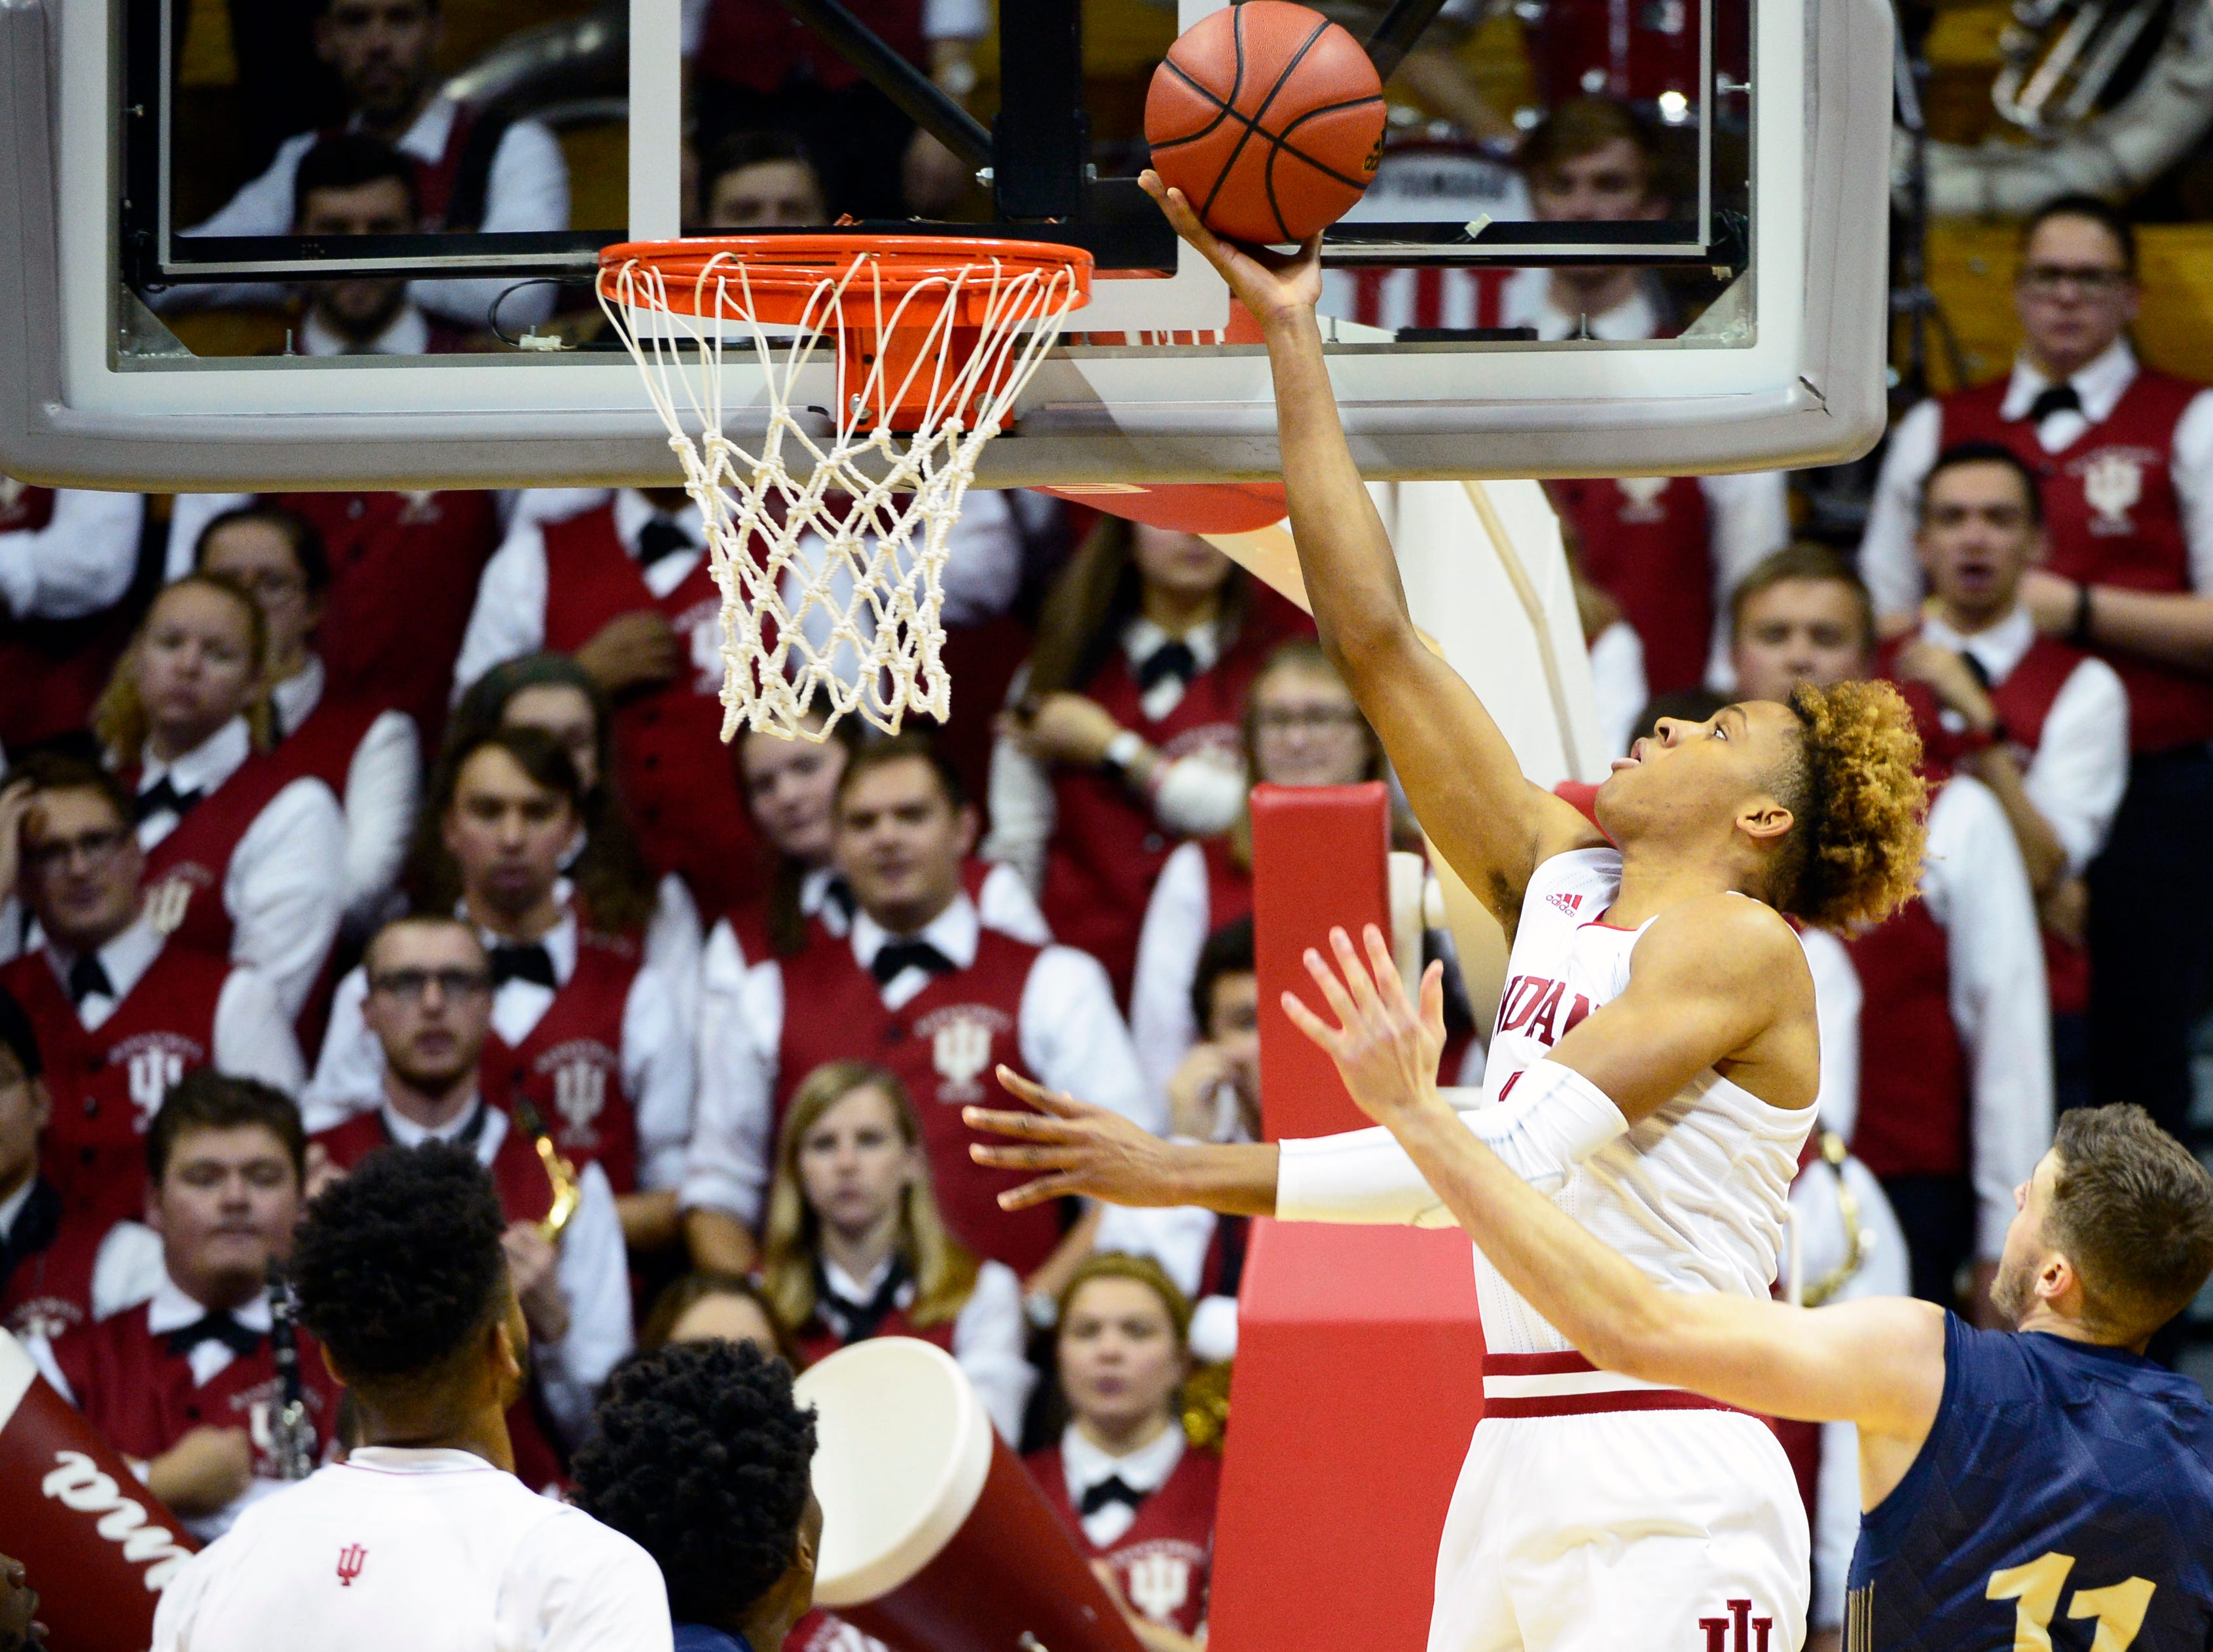 Indiana Hoosiers guard Romeo Langford (0) goes to the basket during the game against Montana State at Simon Skjodt Assembly Hall in Bloomington, Ind., on Friday, Nov. 9, 2018.